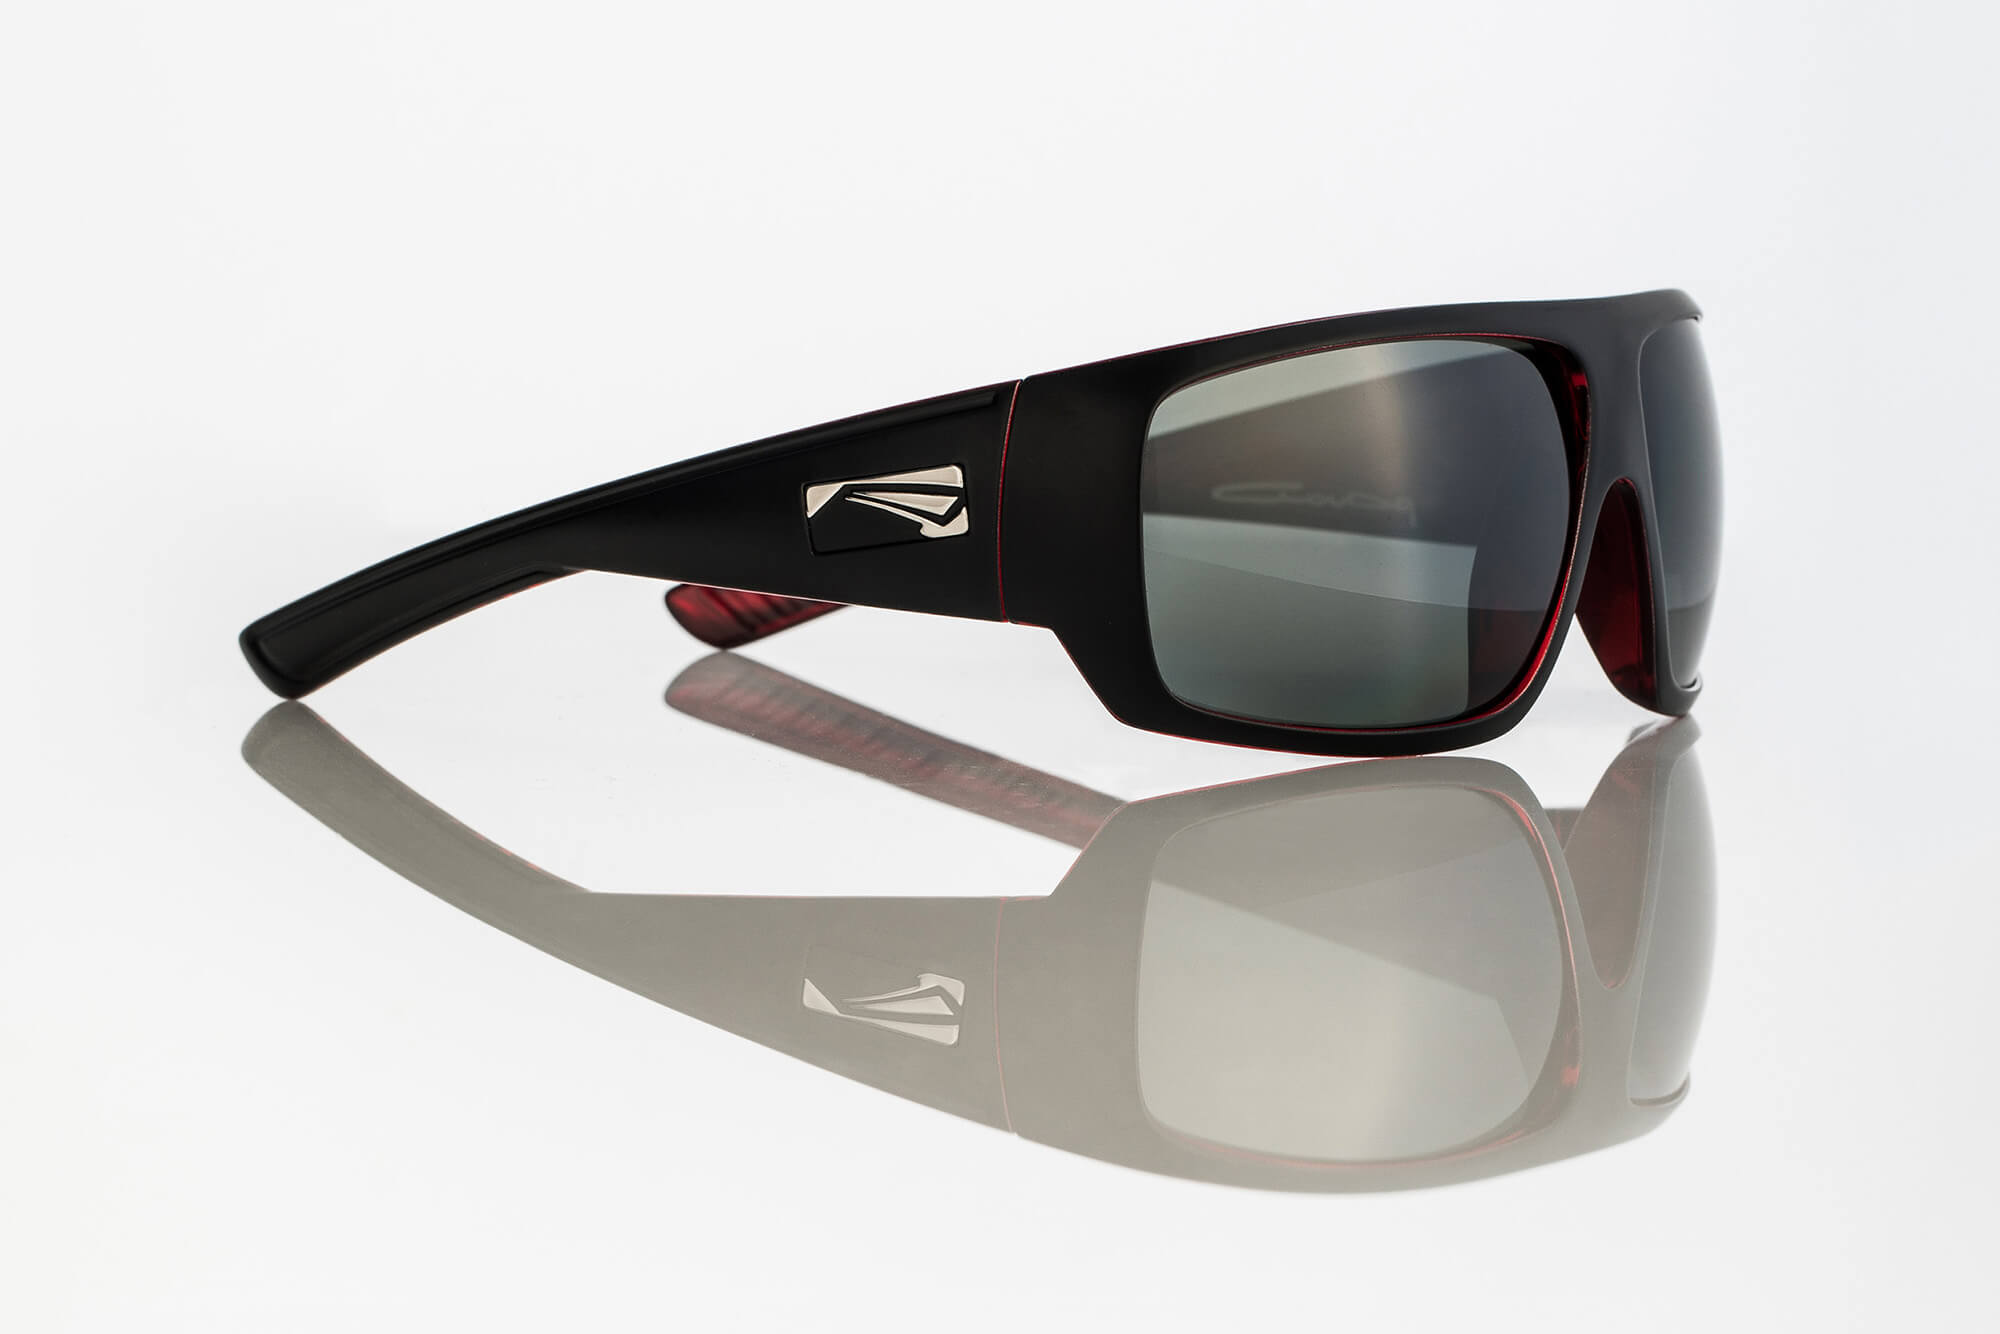 lip sunglasses cloud9 product photography produktfotografie flap photography fotograf philipp greindl photographer